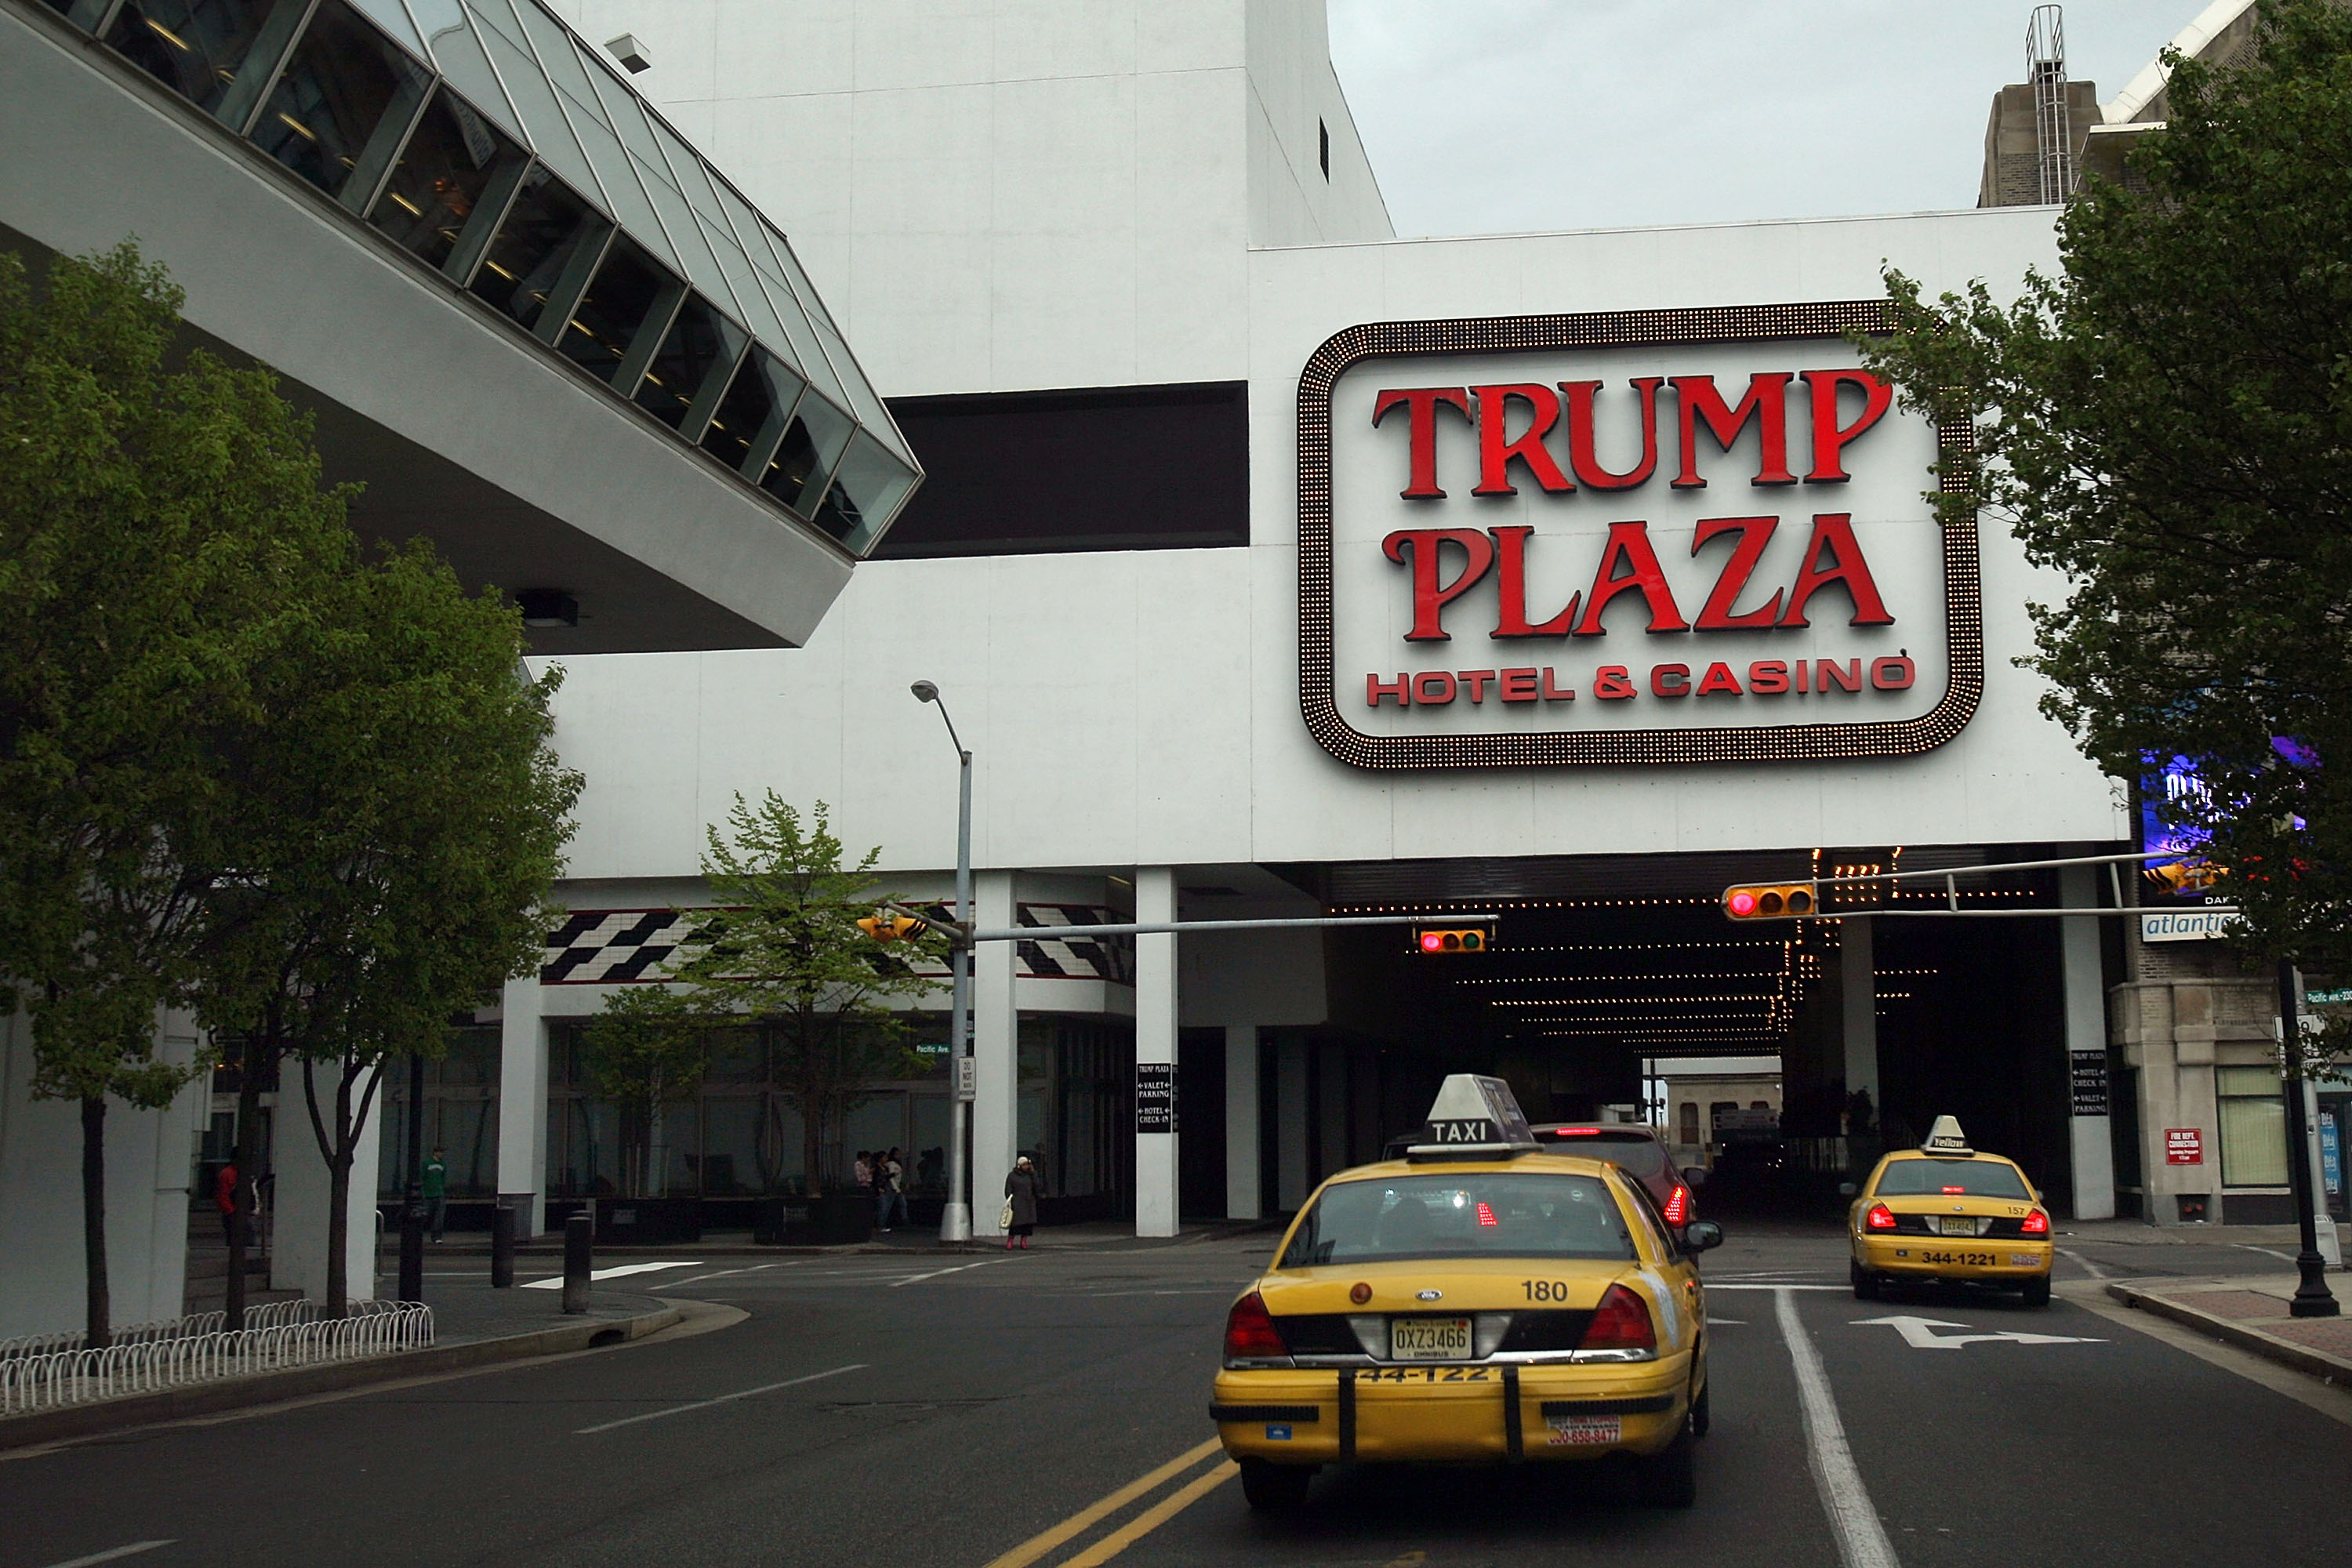 Trump Plaza in Atlantic City, N.J.